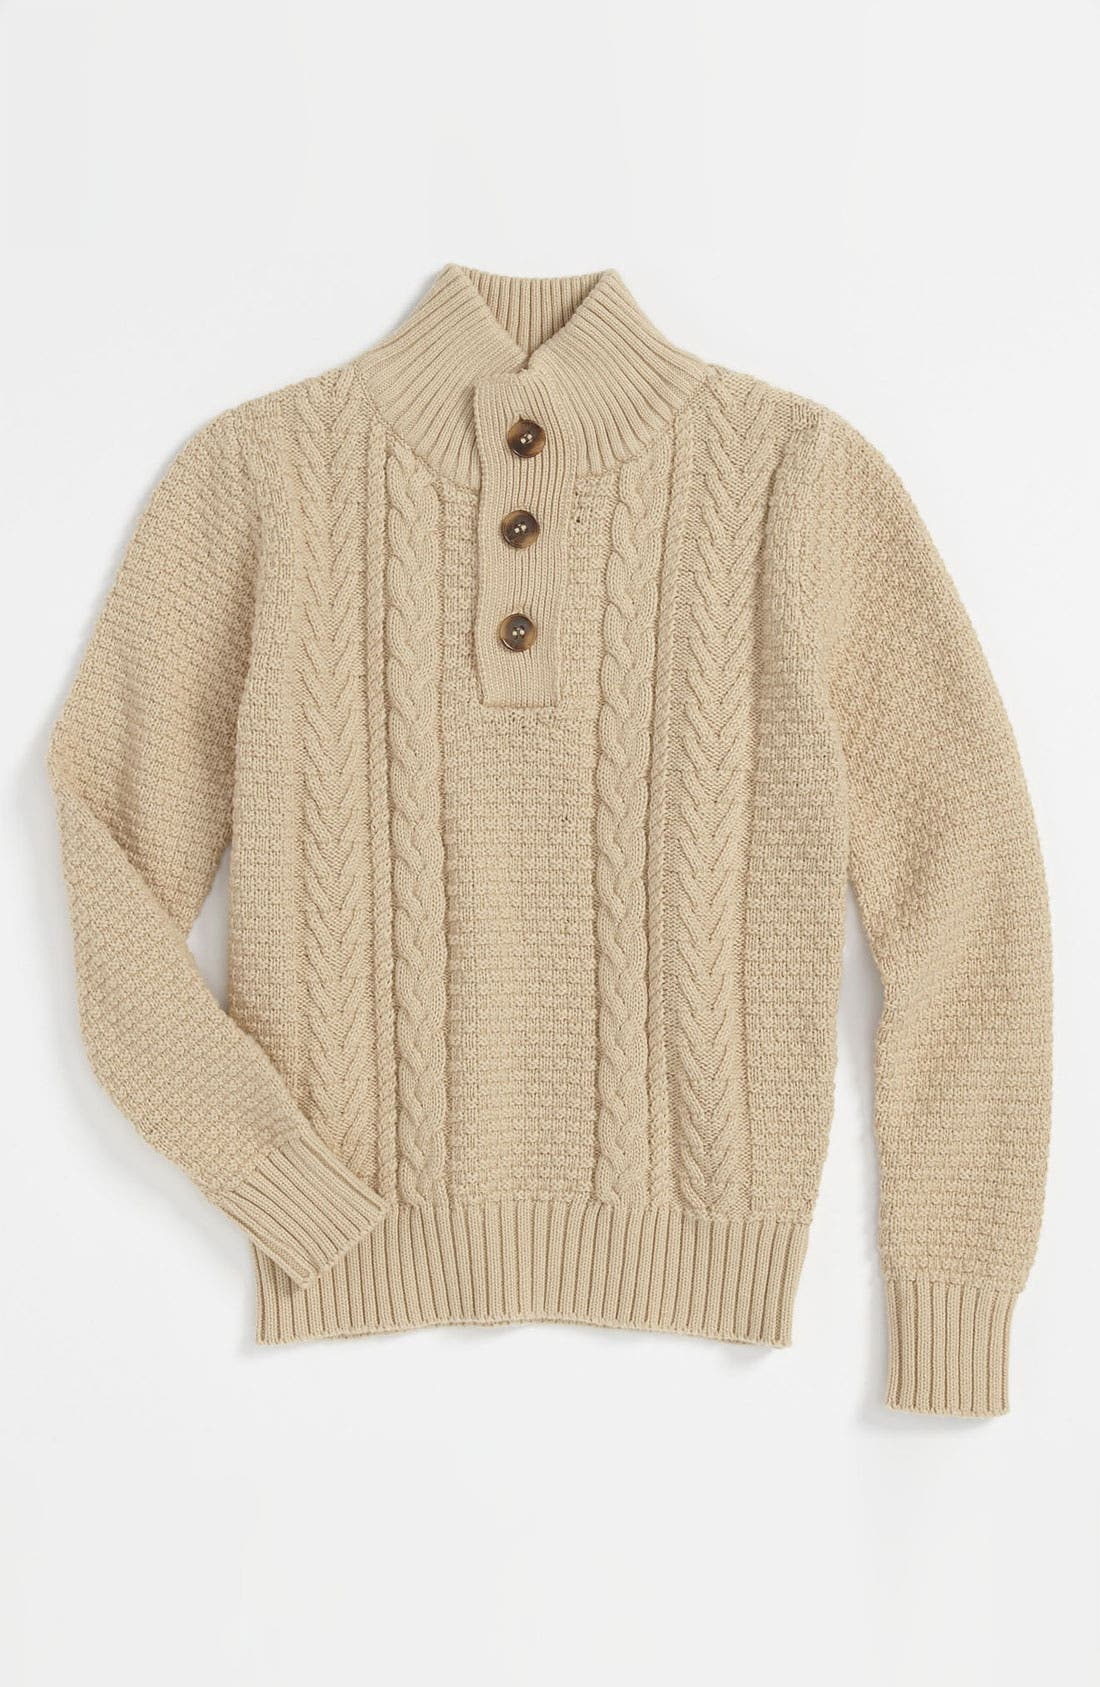 Alternate Image 1 Selected - Peek 'Nathan' Cable Knit Sweater (Toddler, Little Boys & Big Boys)